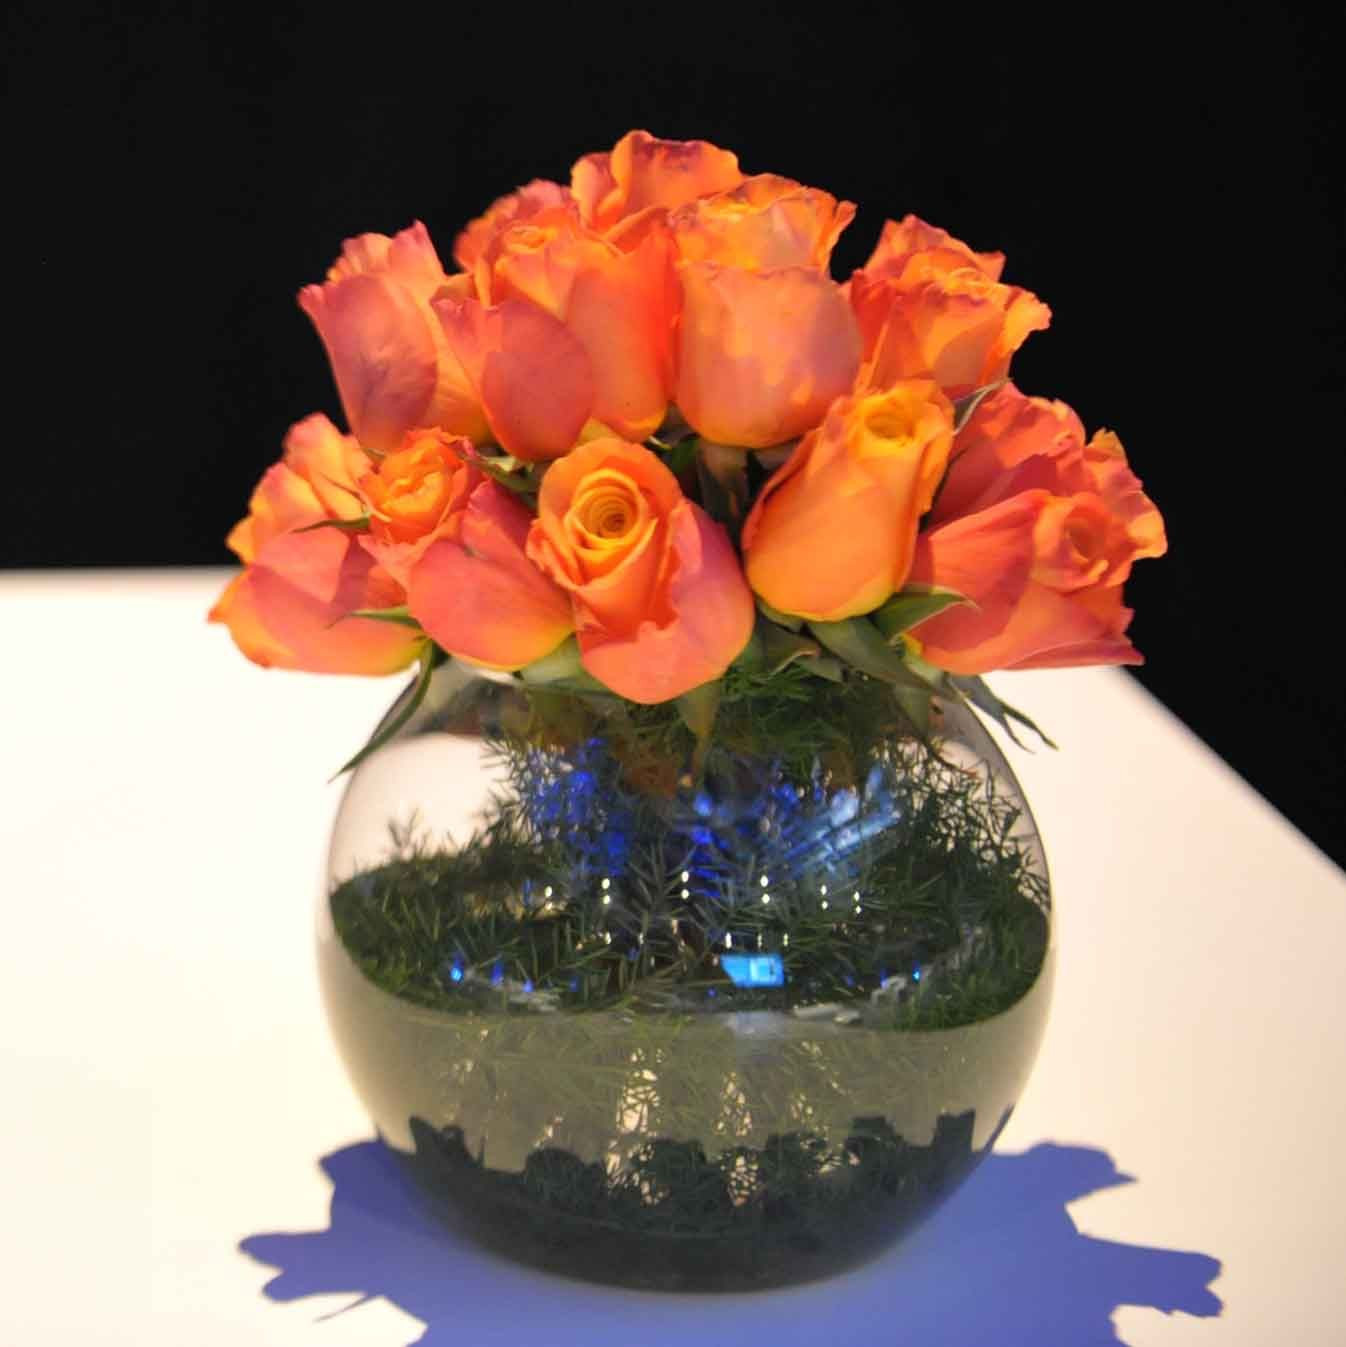 polyresin vase of orange glass vase image 8 od orange rose foliage lined gold fish throughout orange glass vase image 8 od orange rose foliage lined gold fish bowl of orange glass